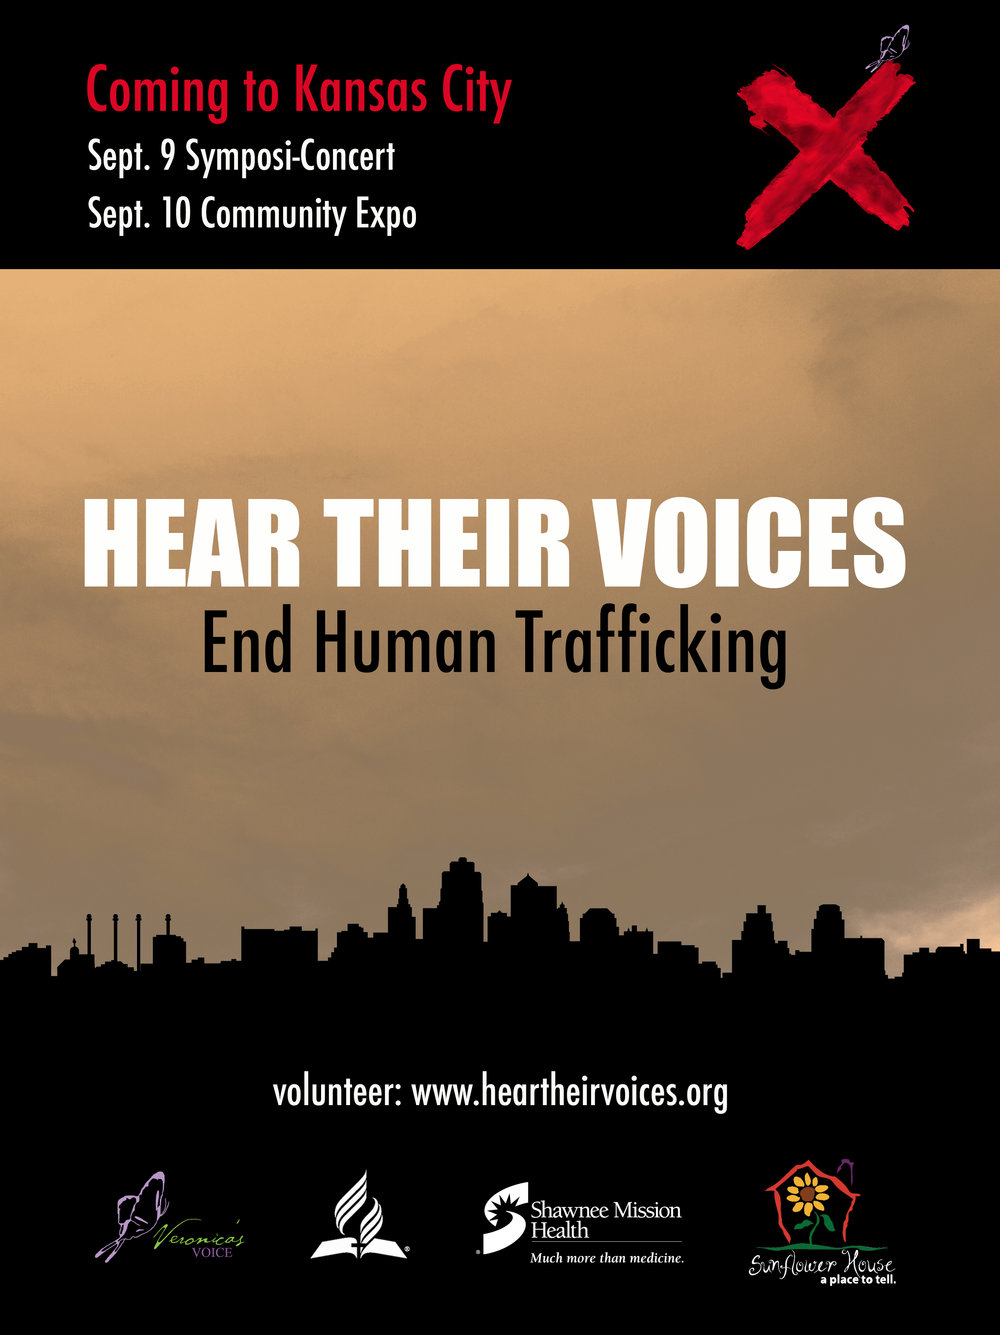 Hear Their Voices Full Page Ad jpg 2445 x 3264 (1.7 MB)